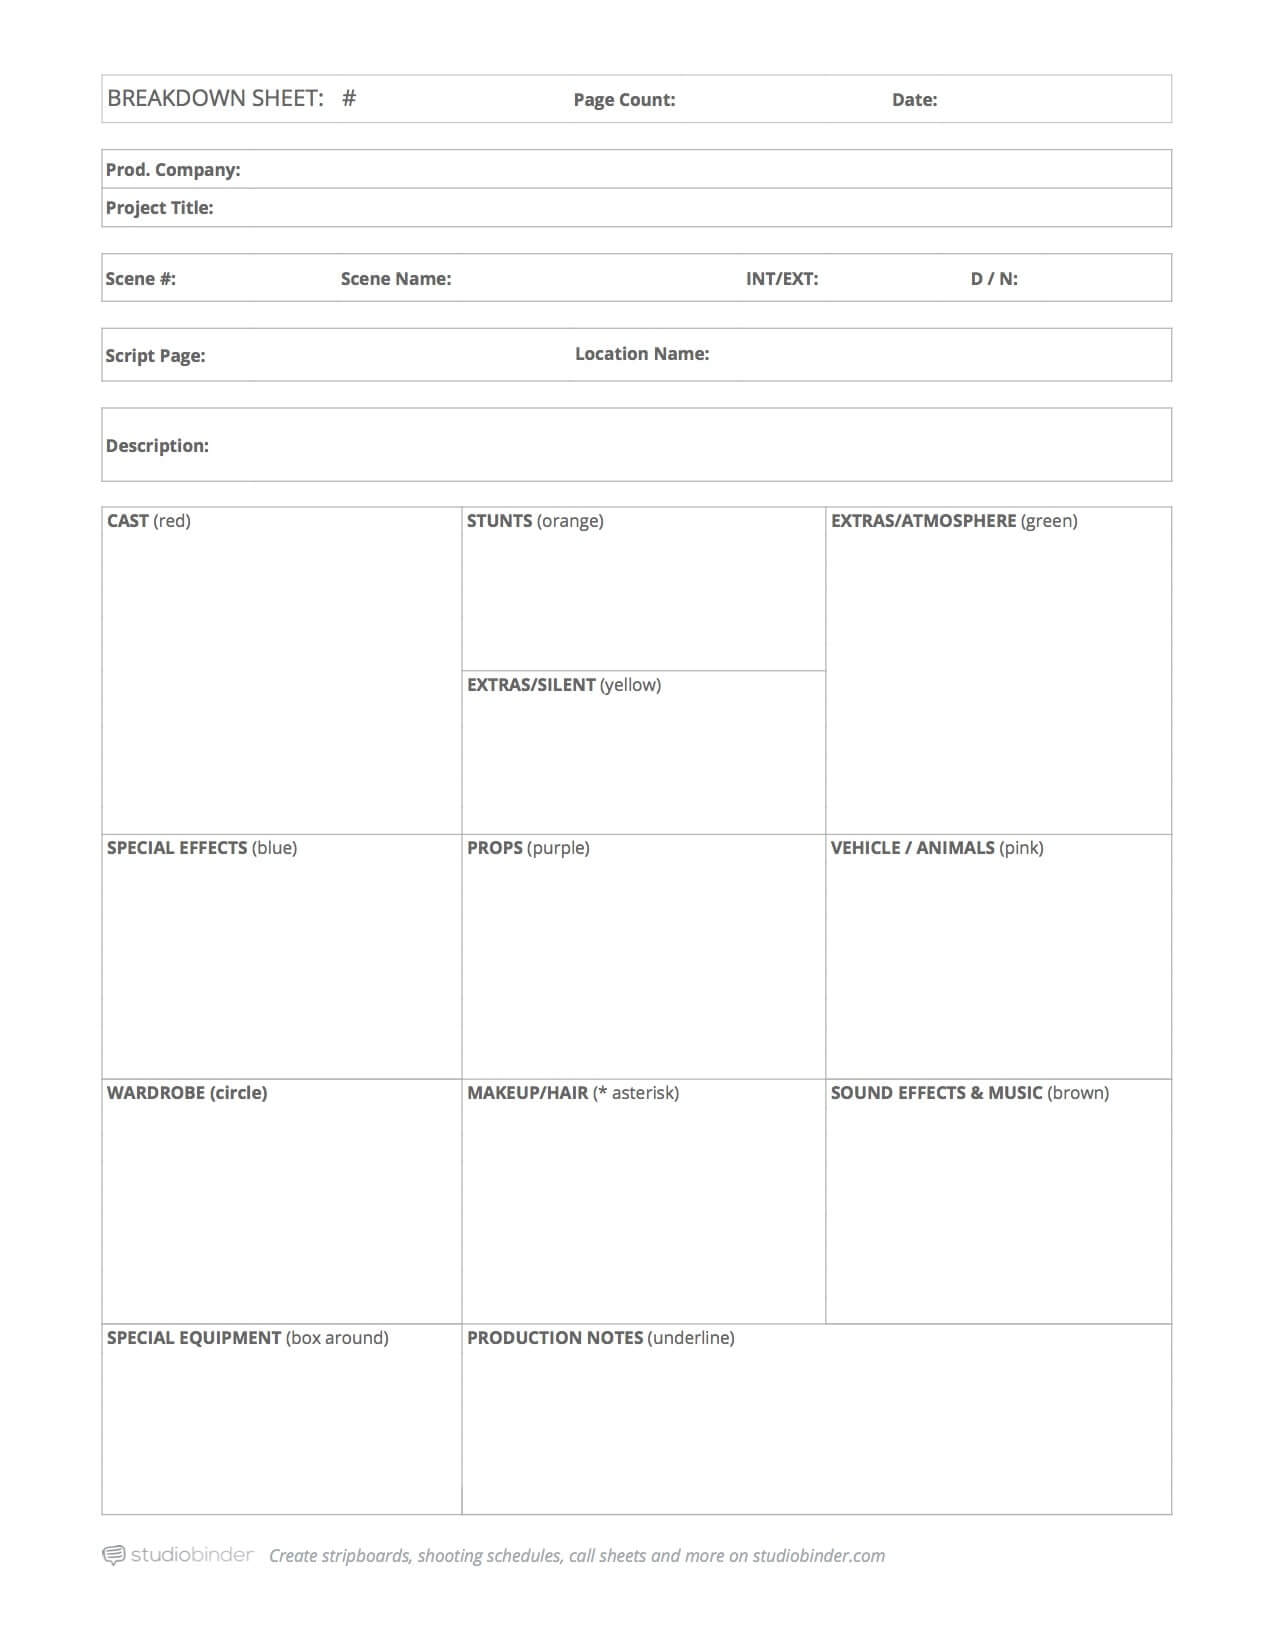 Script Breakdown Template – Breakdown Sheet – StudioBinder